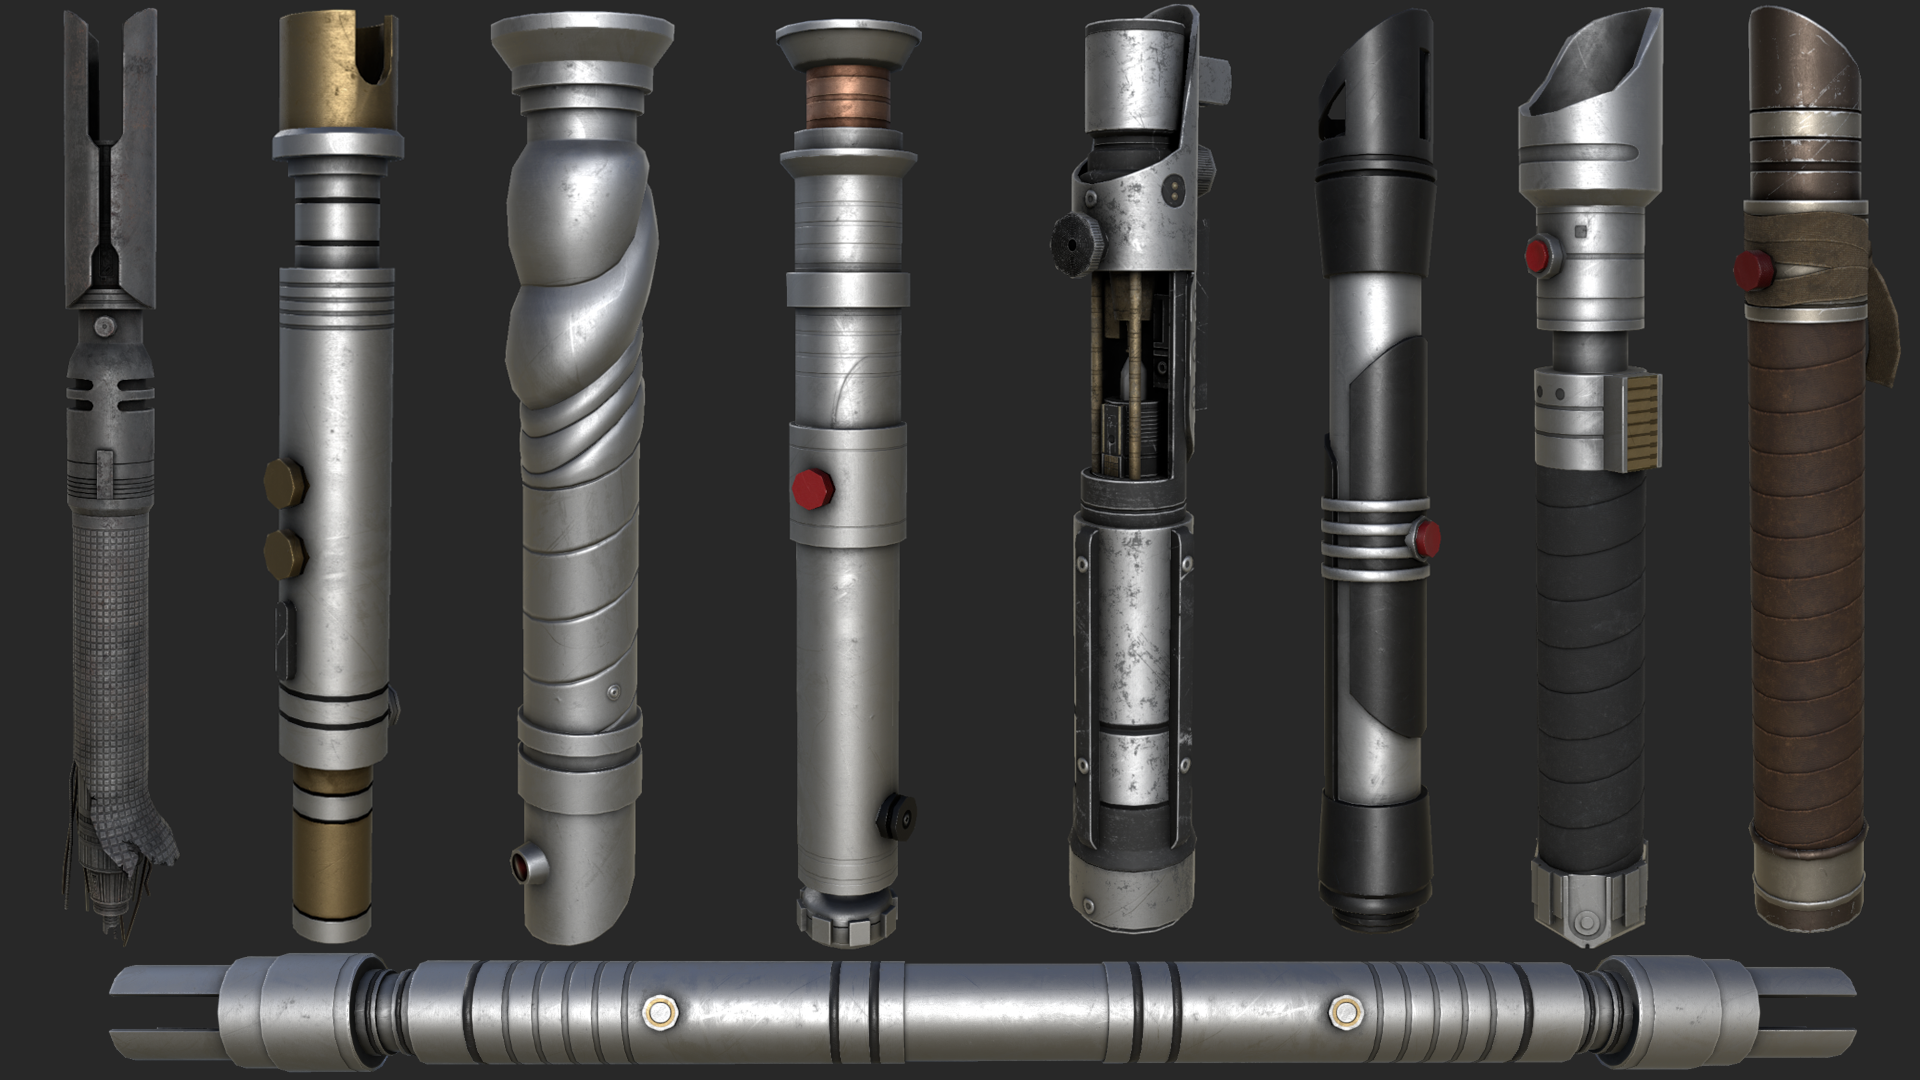 Lightsaber Hilt Collection Lightsabers Melee Jkhub He was a young jedi, he was strong, bold, brave, and he was a god damn wookiee. lightsaber hilt collection